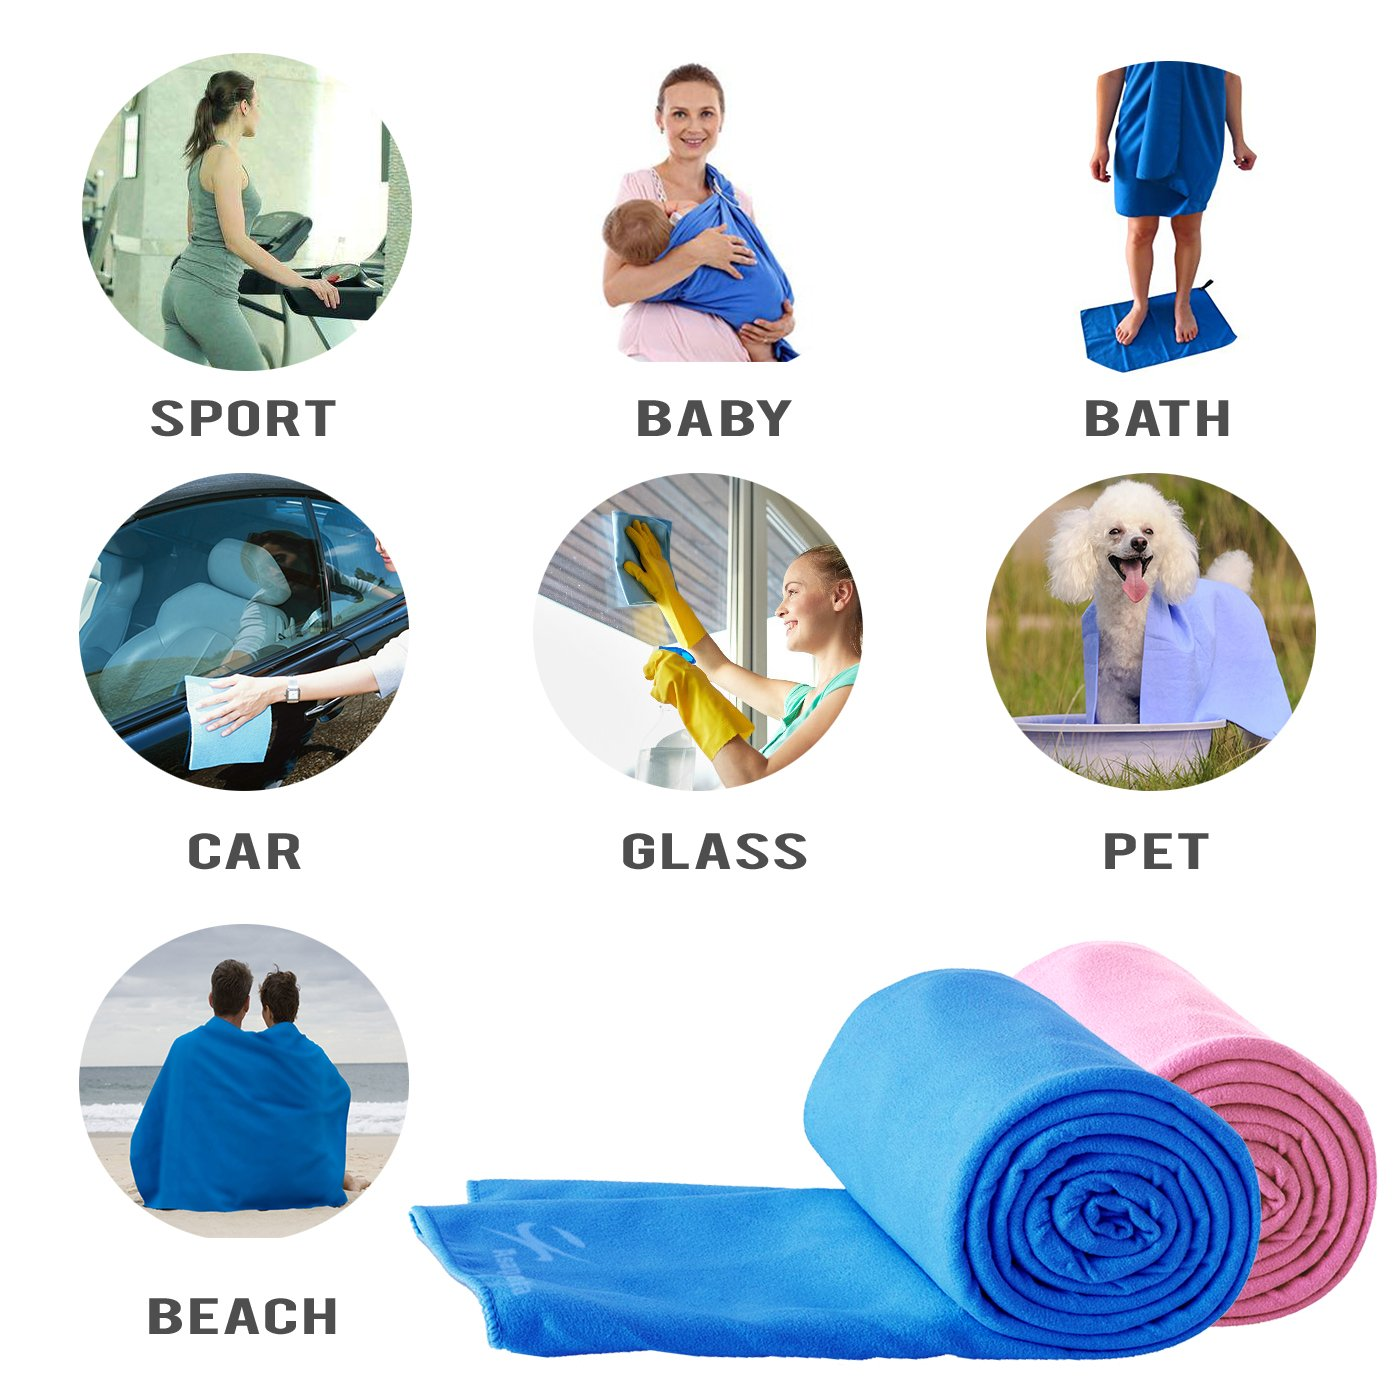 Premium Travel Towel | Microfiber Towel Perfect Sports,Travel Beach Towel Travel towel (blue)